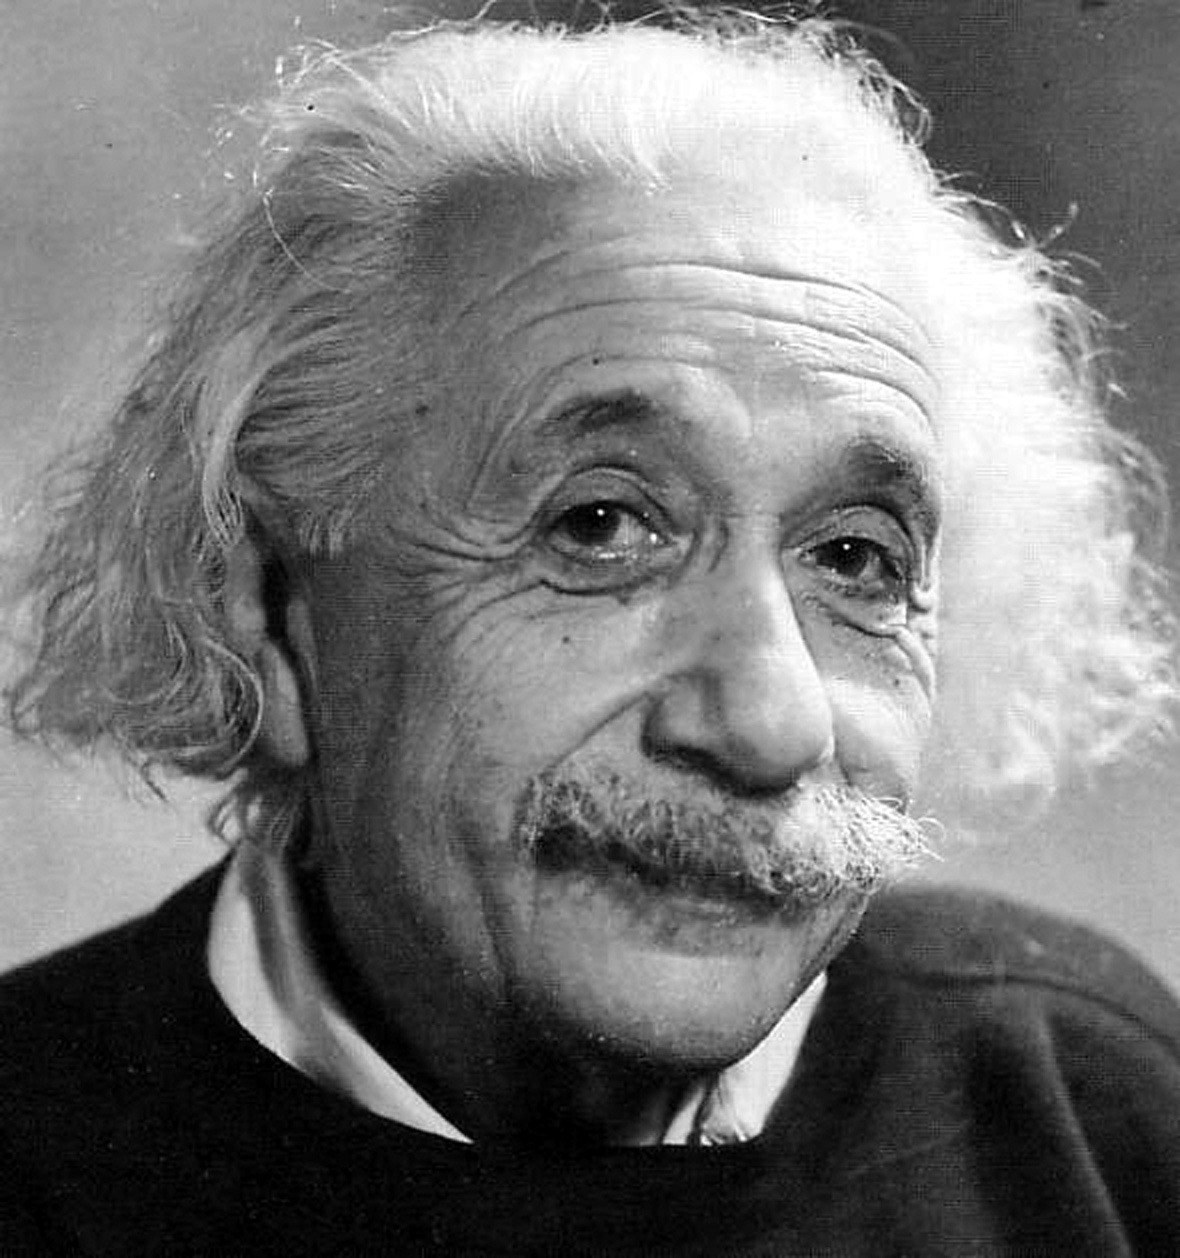 Happy Birthday, Albert Einstein! Did you know that Einstein, when he wasn't formulating the theory of relativity, did a ton of work to help get female scientists out of Germany during WWII?